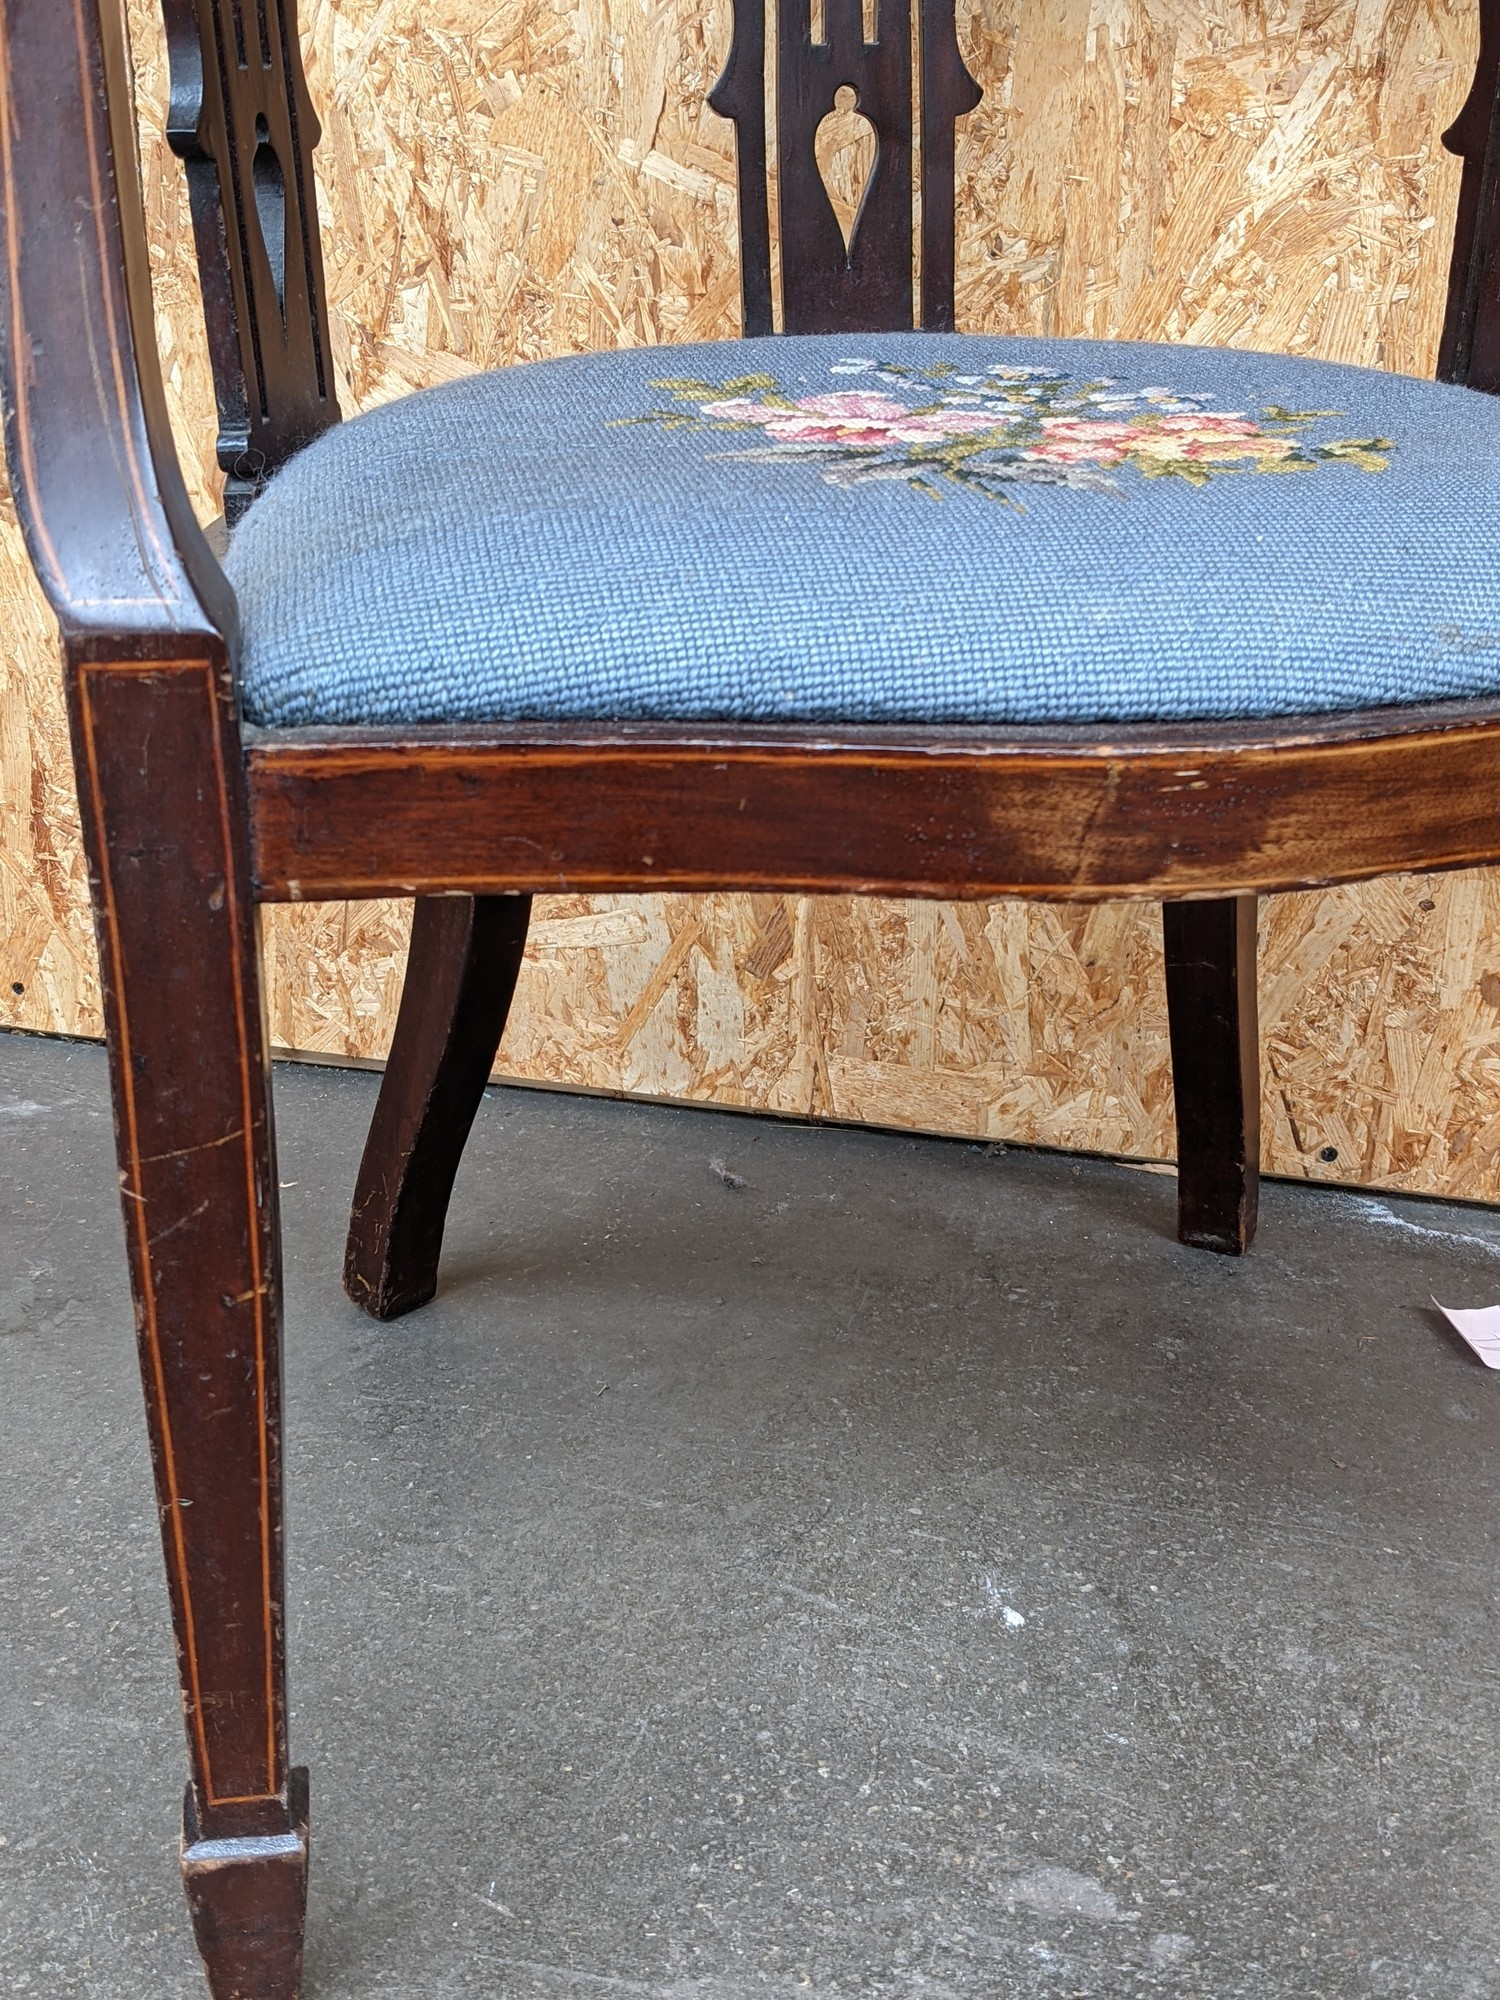 An Edwardian inlaid curved back arm chair, with three splat supports, upon pedestal legs, - Image 3 of 3